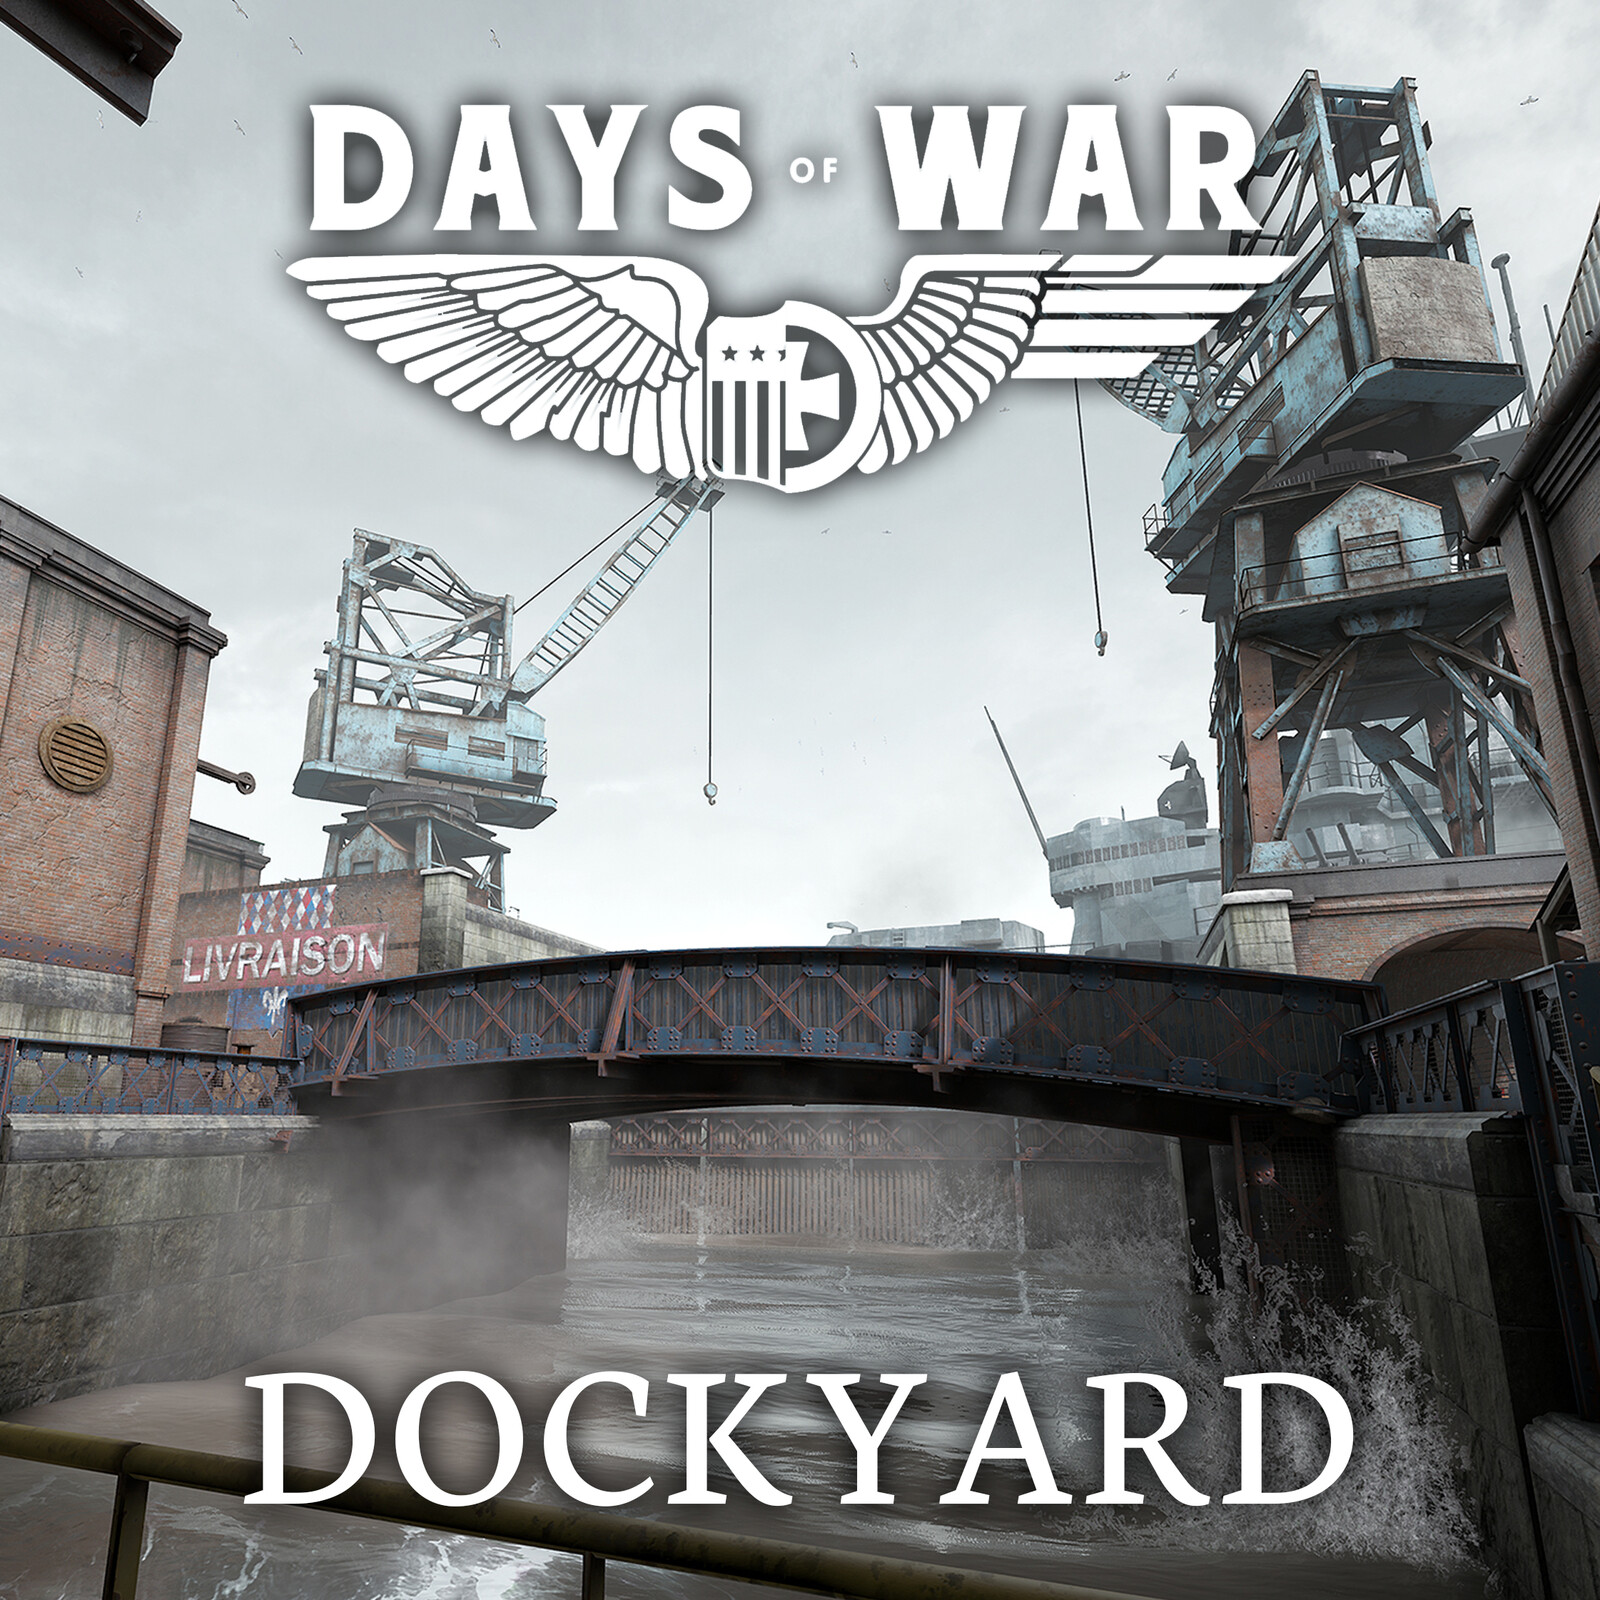 Days of War - Dockyard